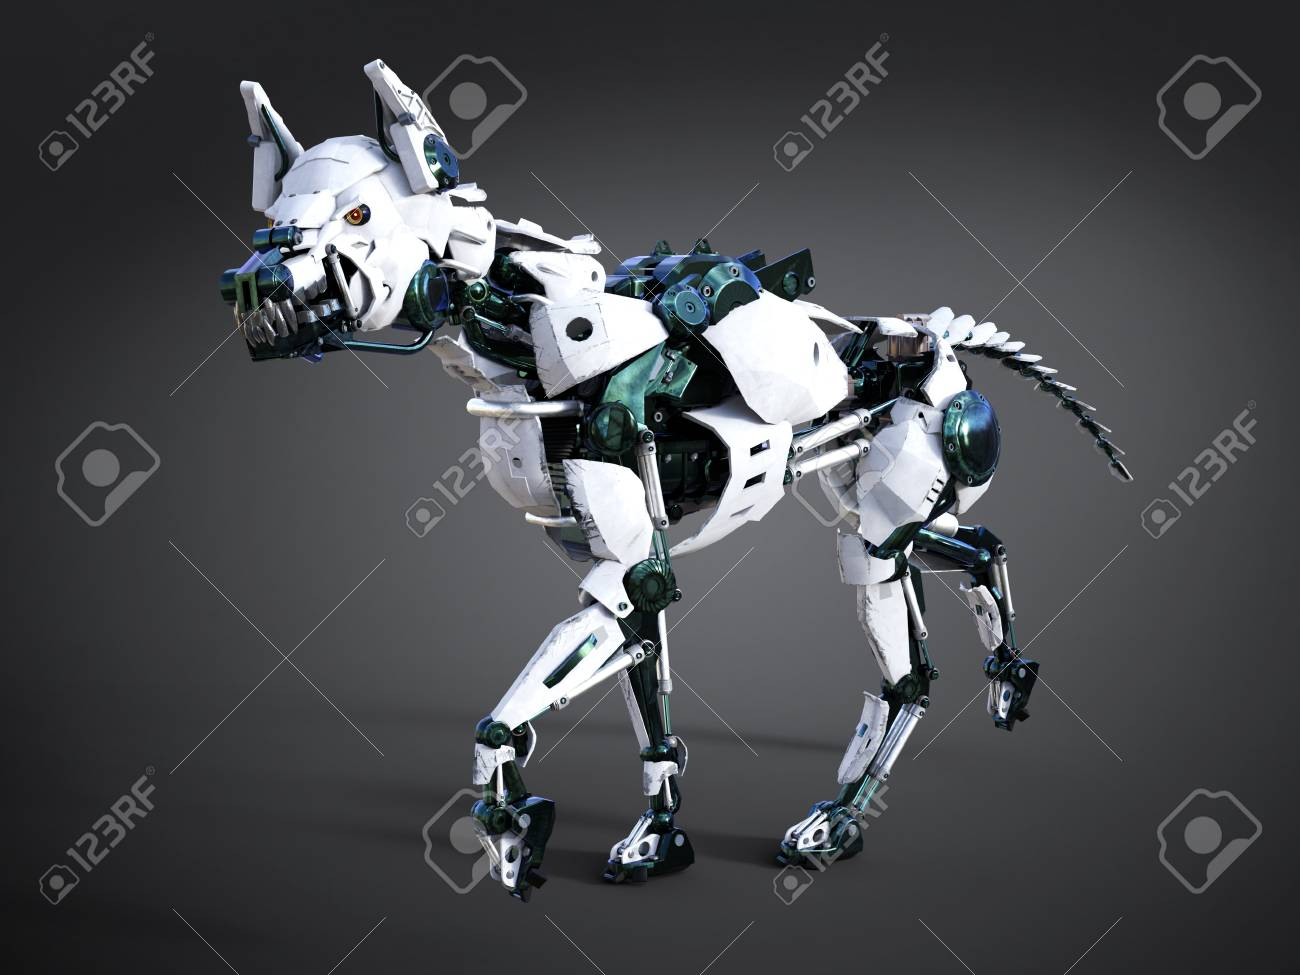 3D rendering of a growling futuristic mean looking robot dog